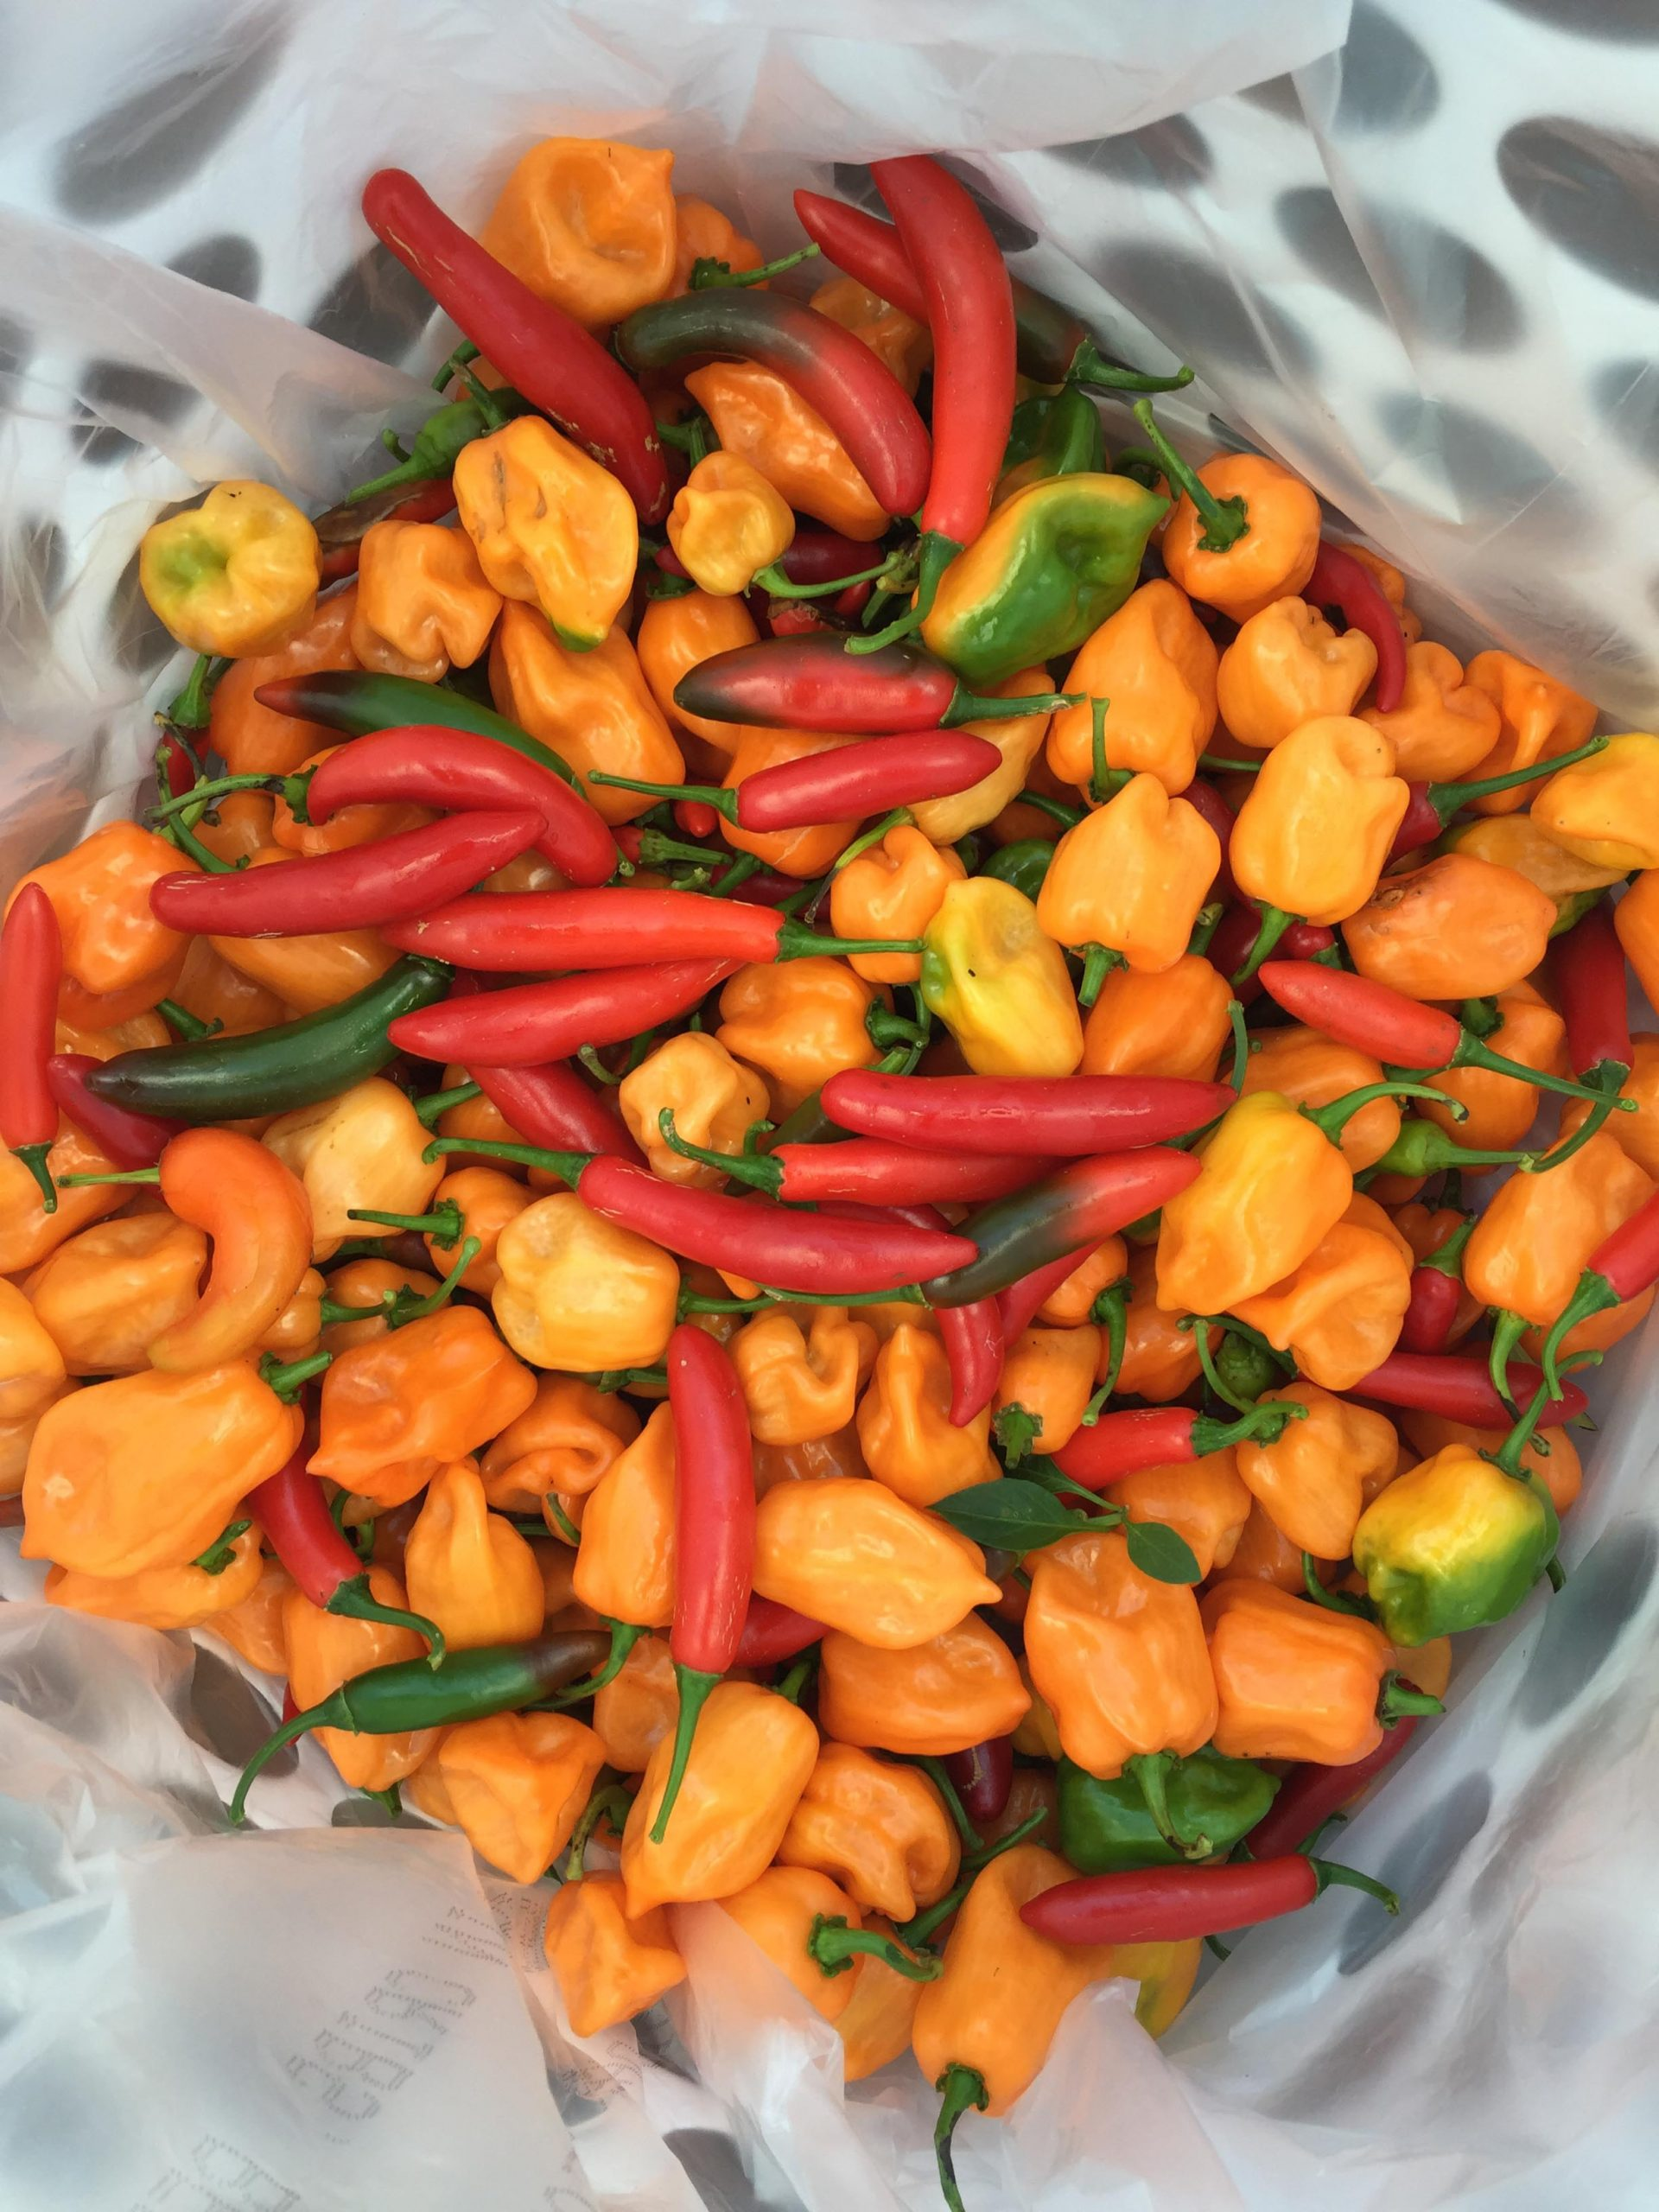 Hot peppers for pantry